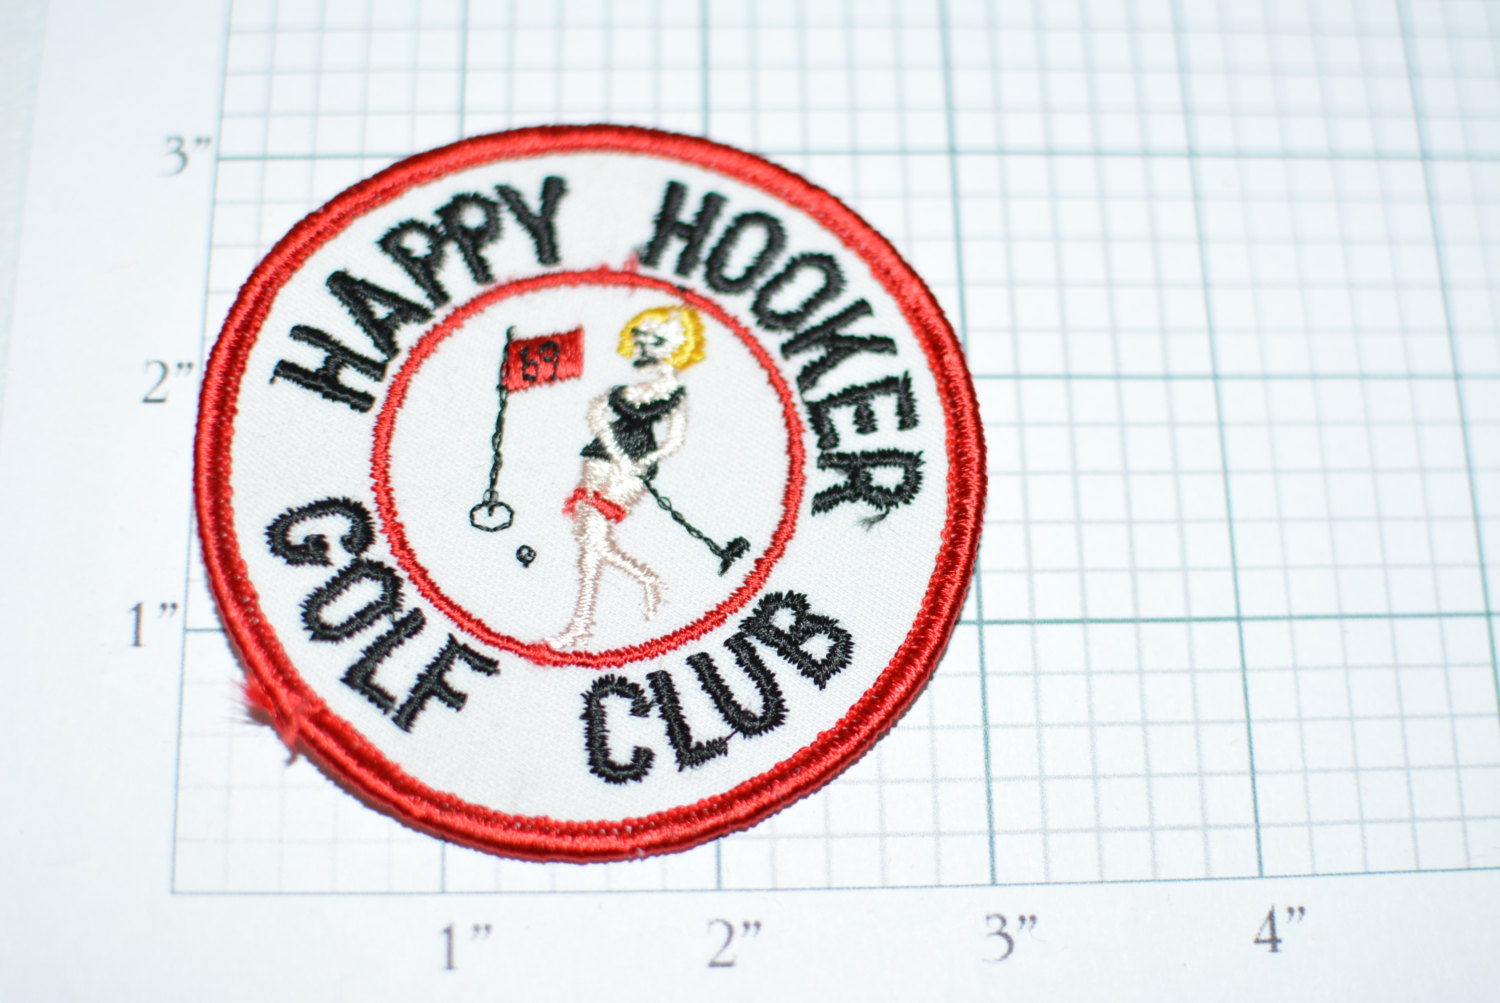 AwesomeWares-01-lg-happy-hooker-golf-club-naughty-vintage-01-lg-happy-hooker-golf-club-naughty-vintage-il_fullxfull.720006826_e35v